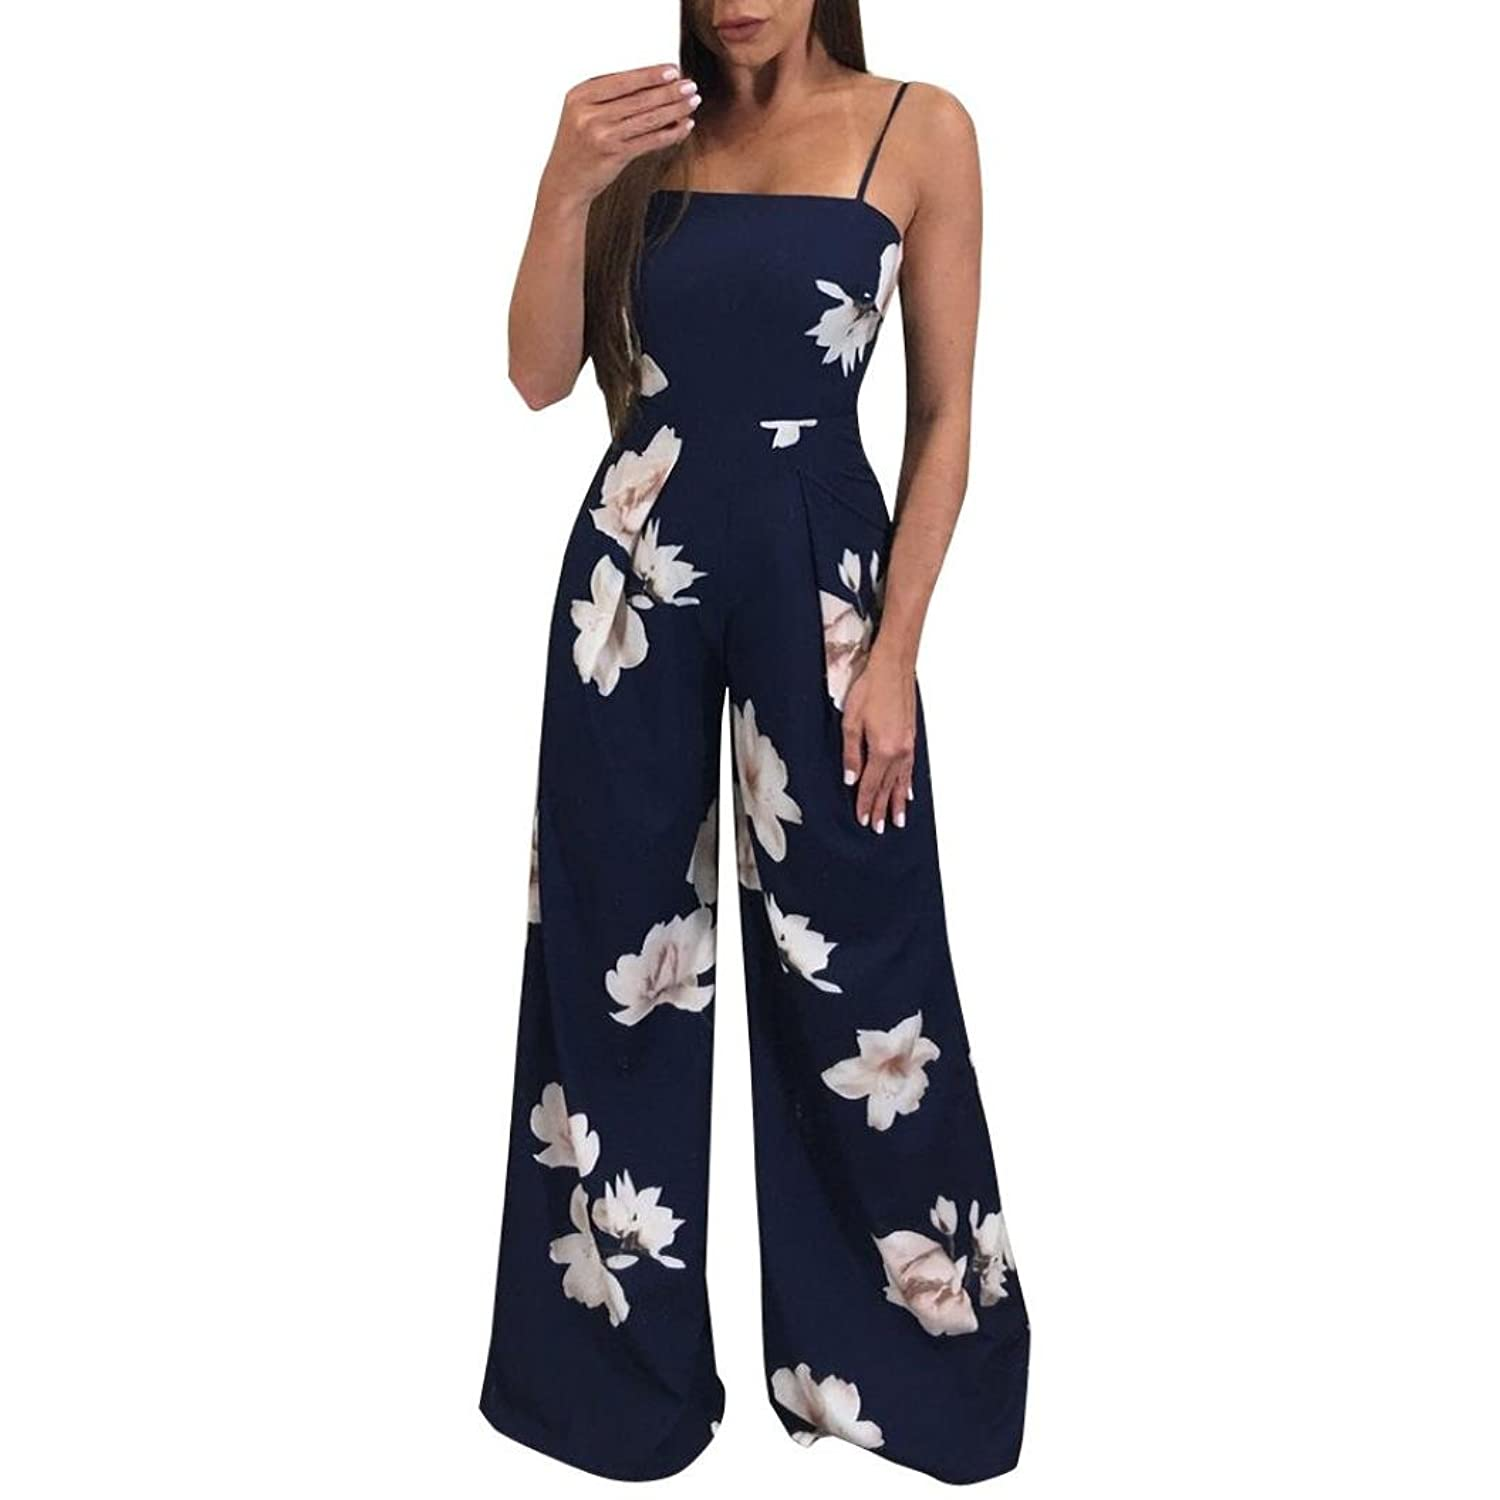 fe992b7d0e ... Lace up Bandage Long Jumpsuit Make You More Chic and Charming. women  rompers women jumpsuits sexy women piece pants rompers for women plus size  rompers ...